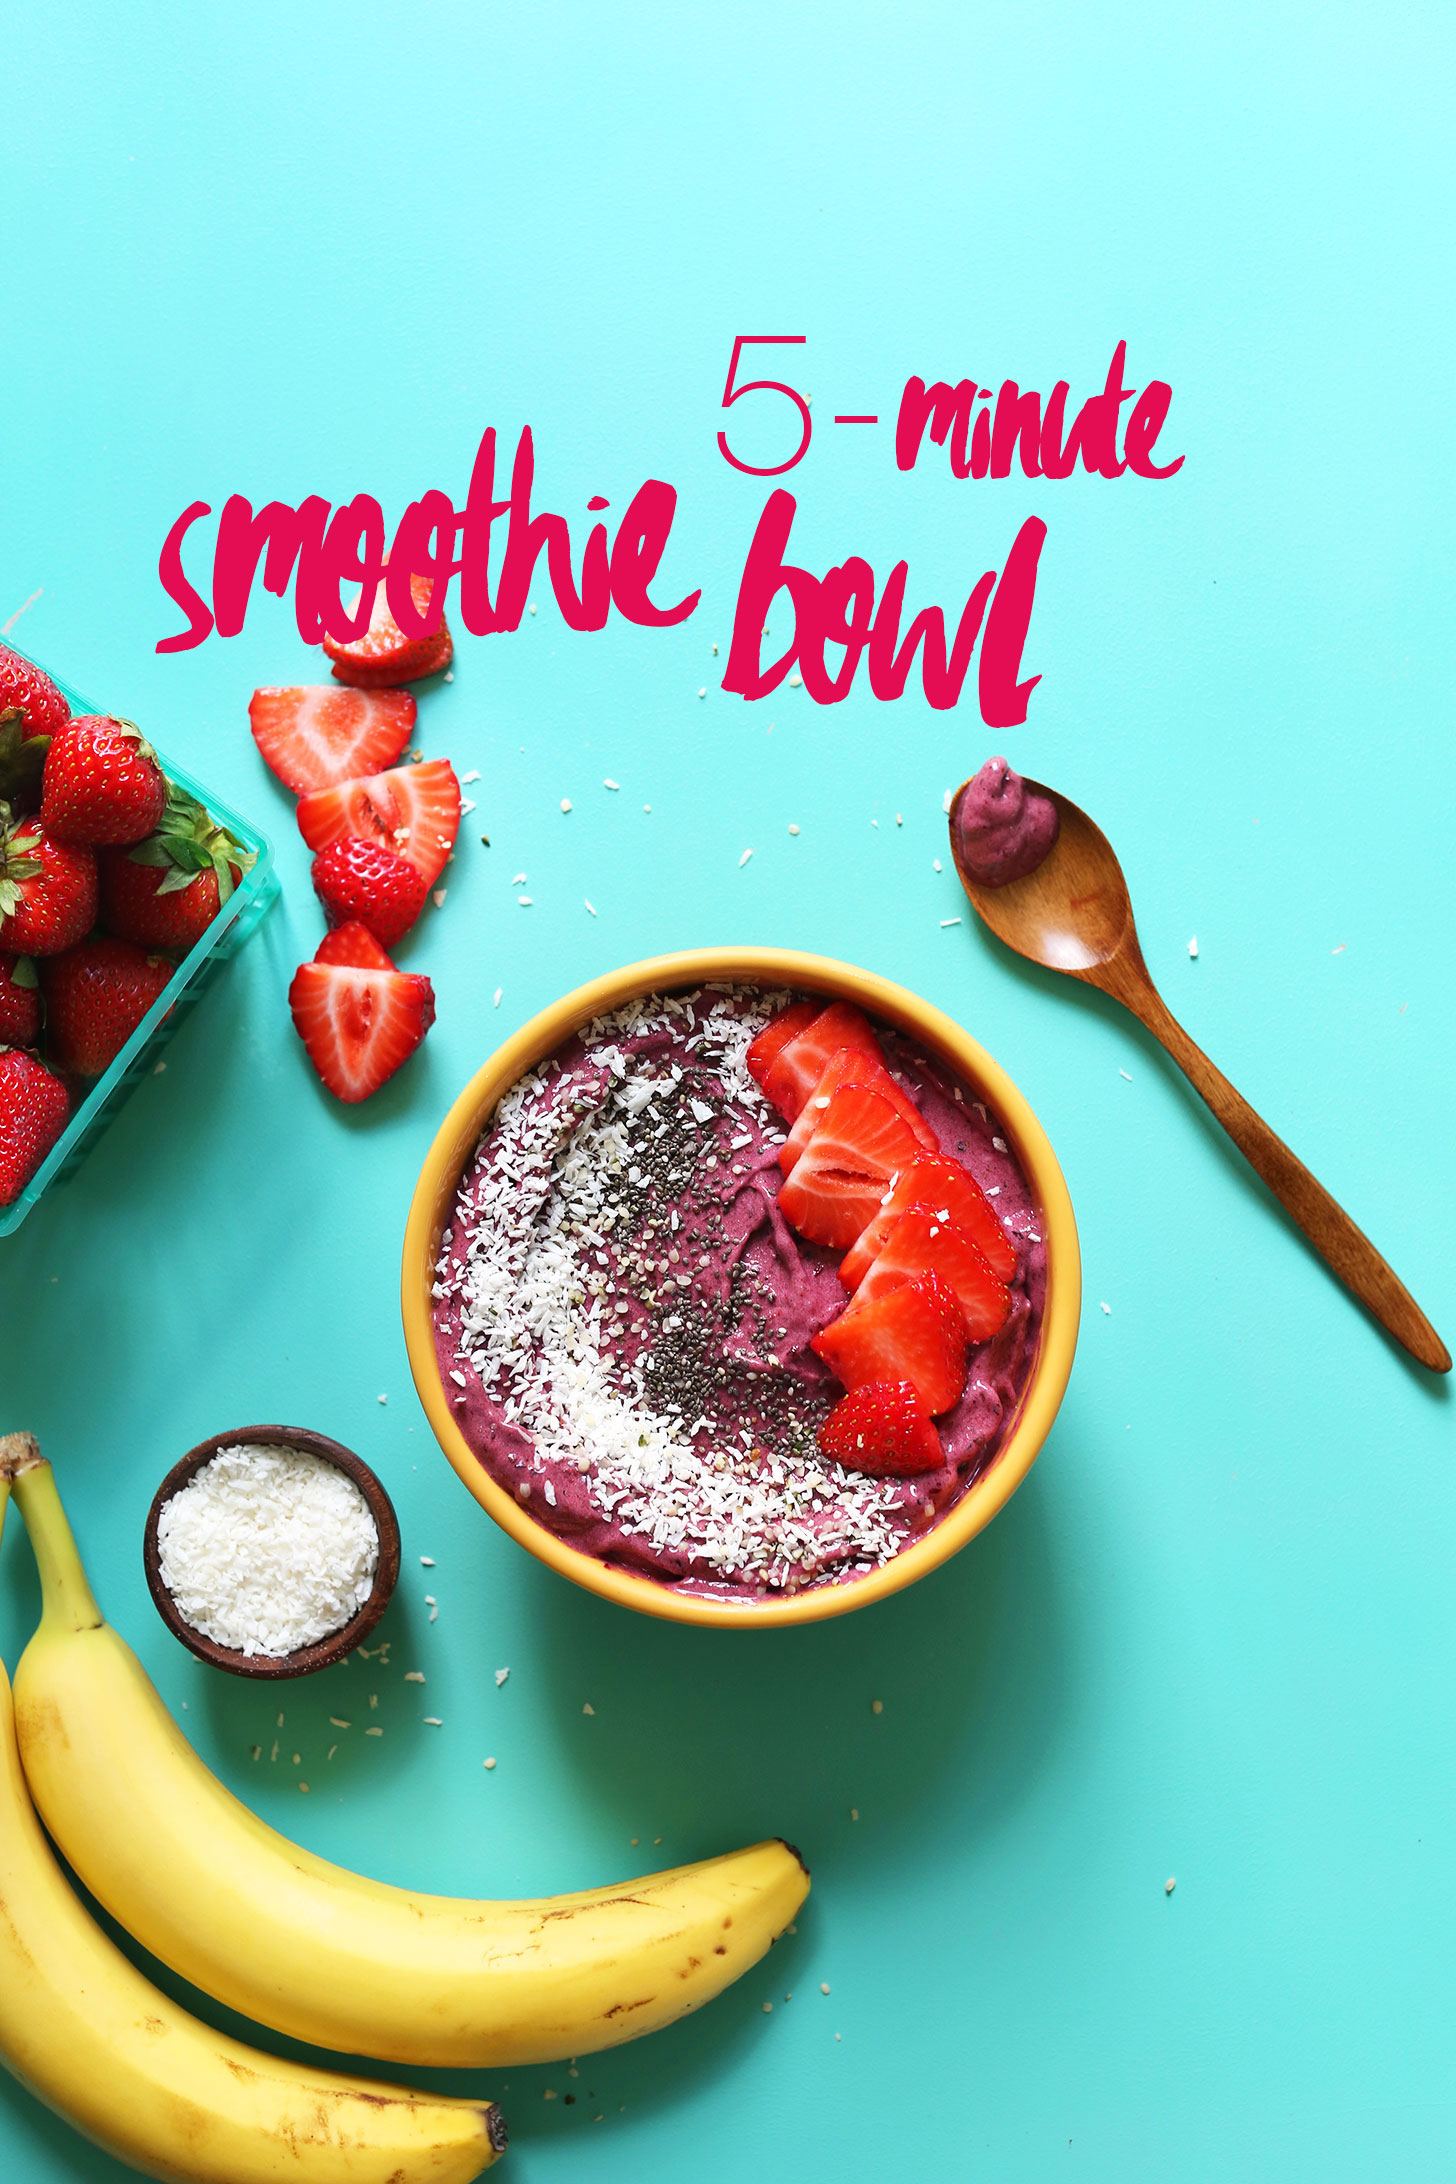 Naturally-sweetened vegan Smoothie Bowl topped with coconut, chia seeds, and strawberries